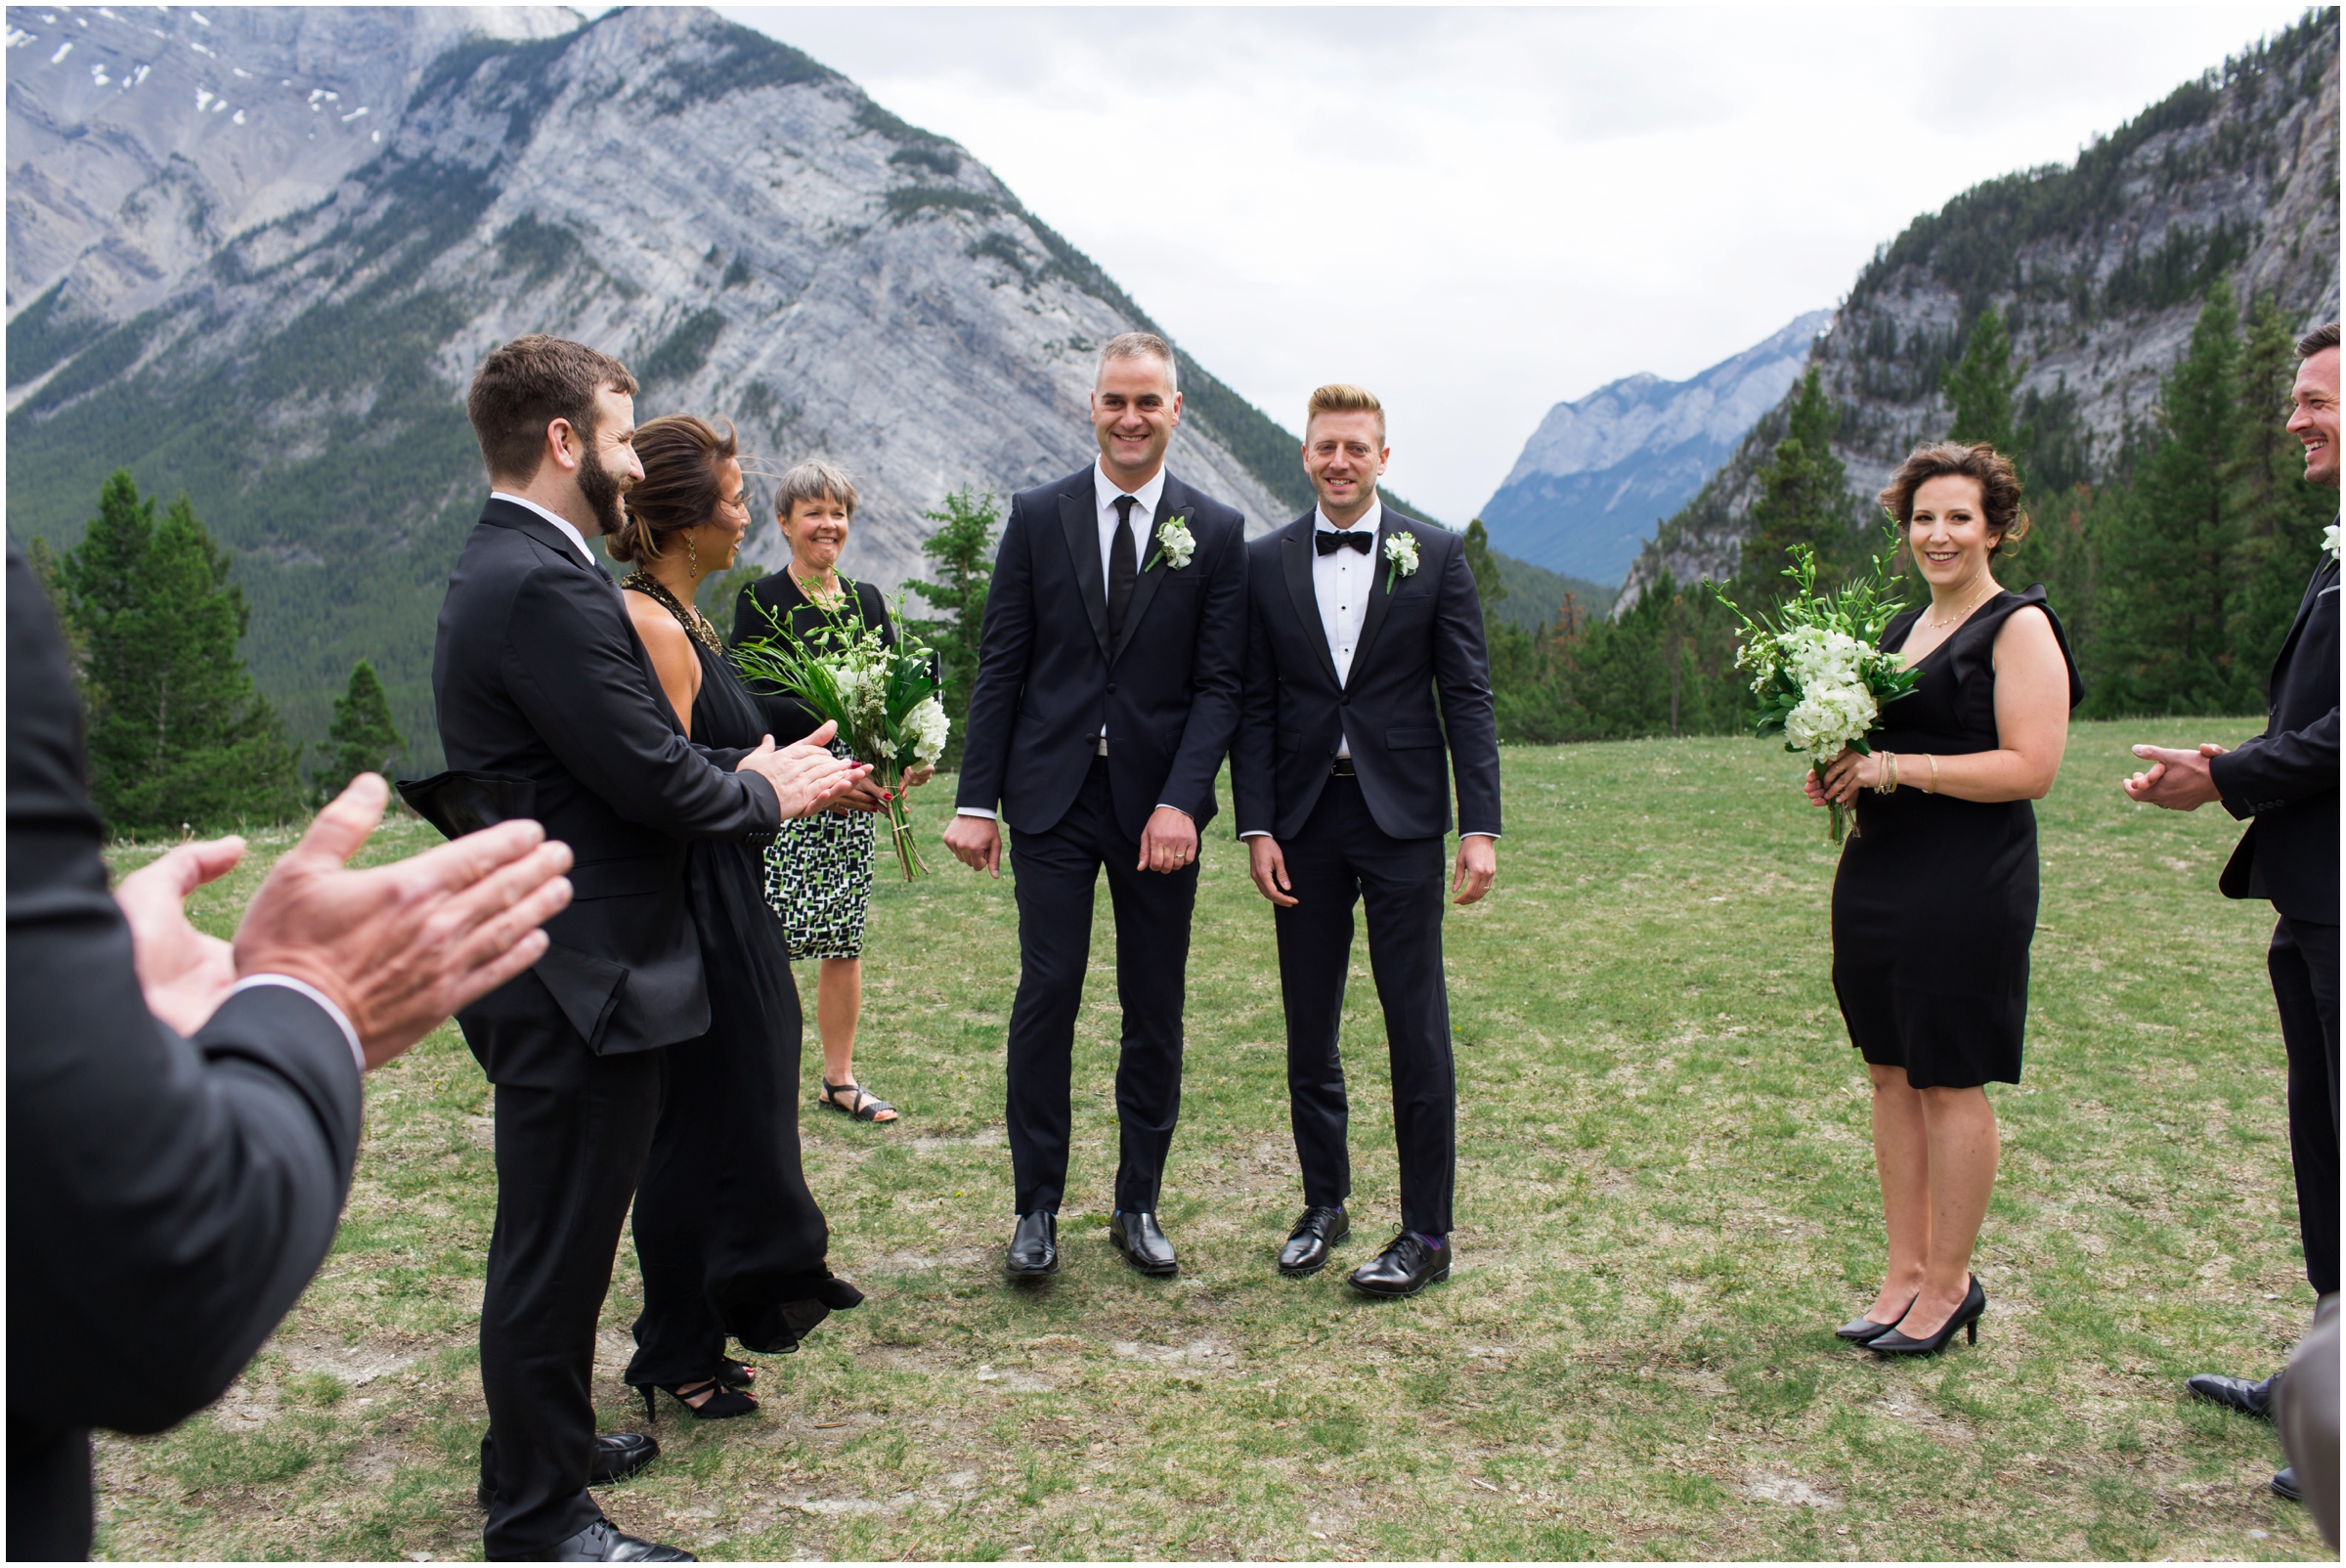 Banff Calgary Wedding - (Selena Phillips-Boyle)_0008.jpg